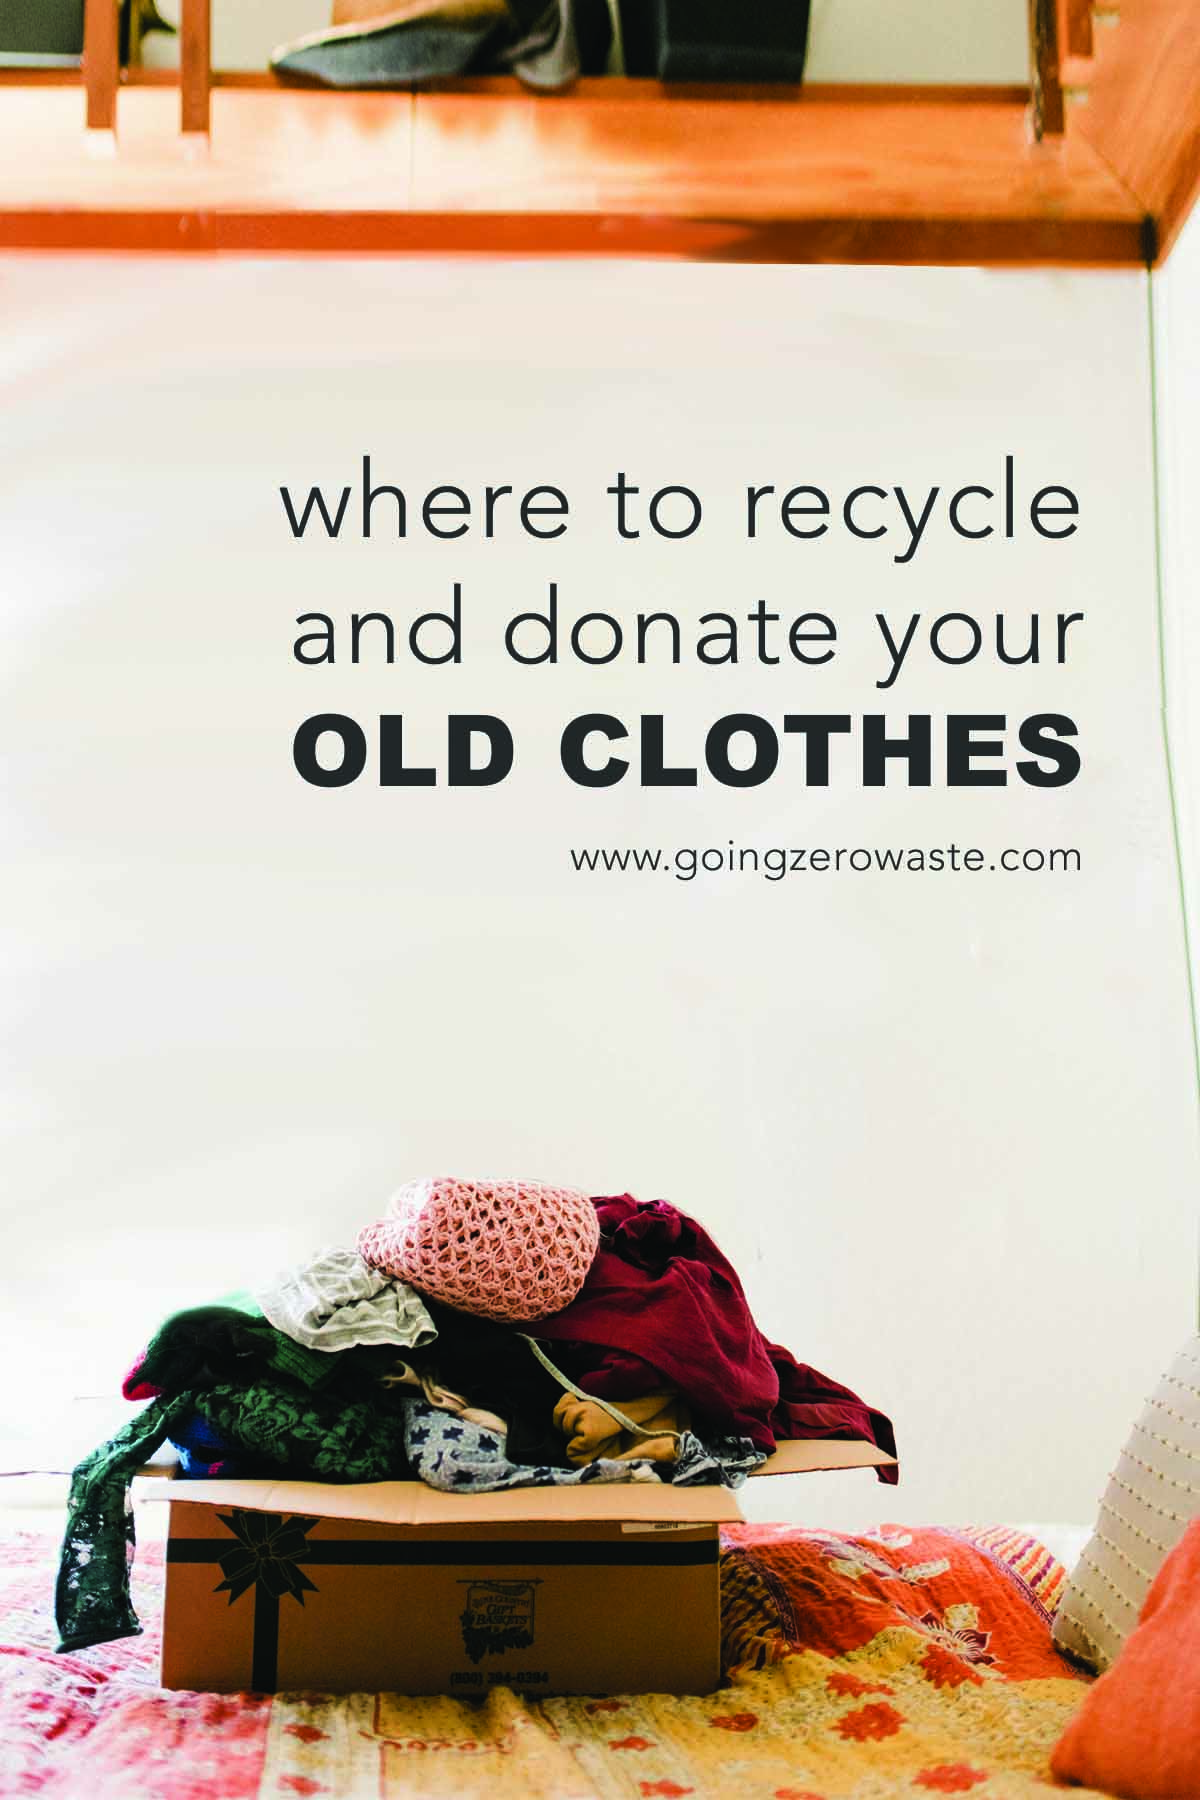 Where to Recycle and Donate Your Old Clothes